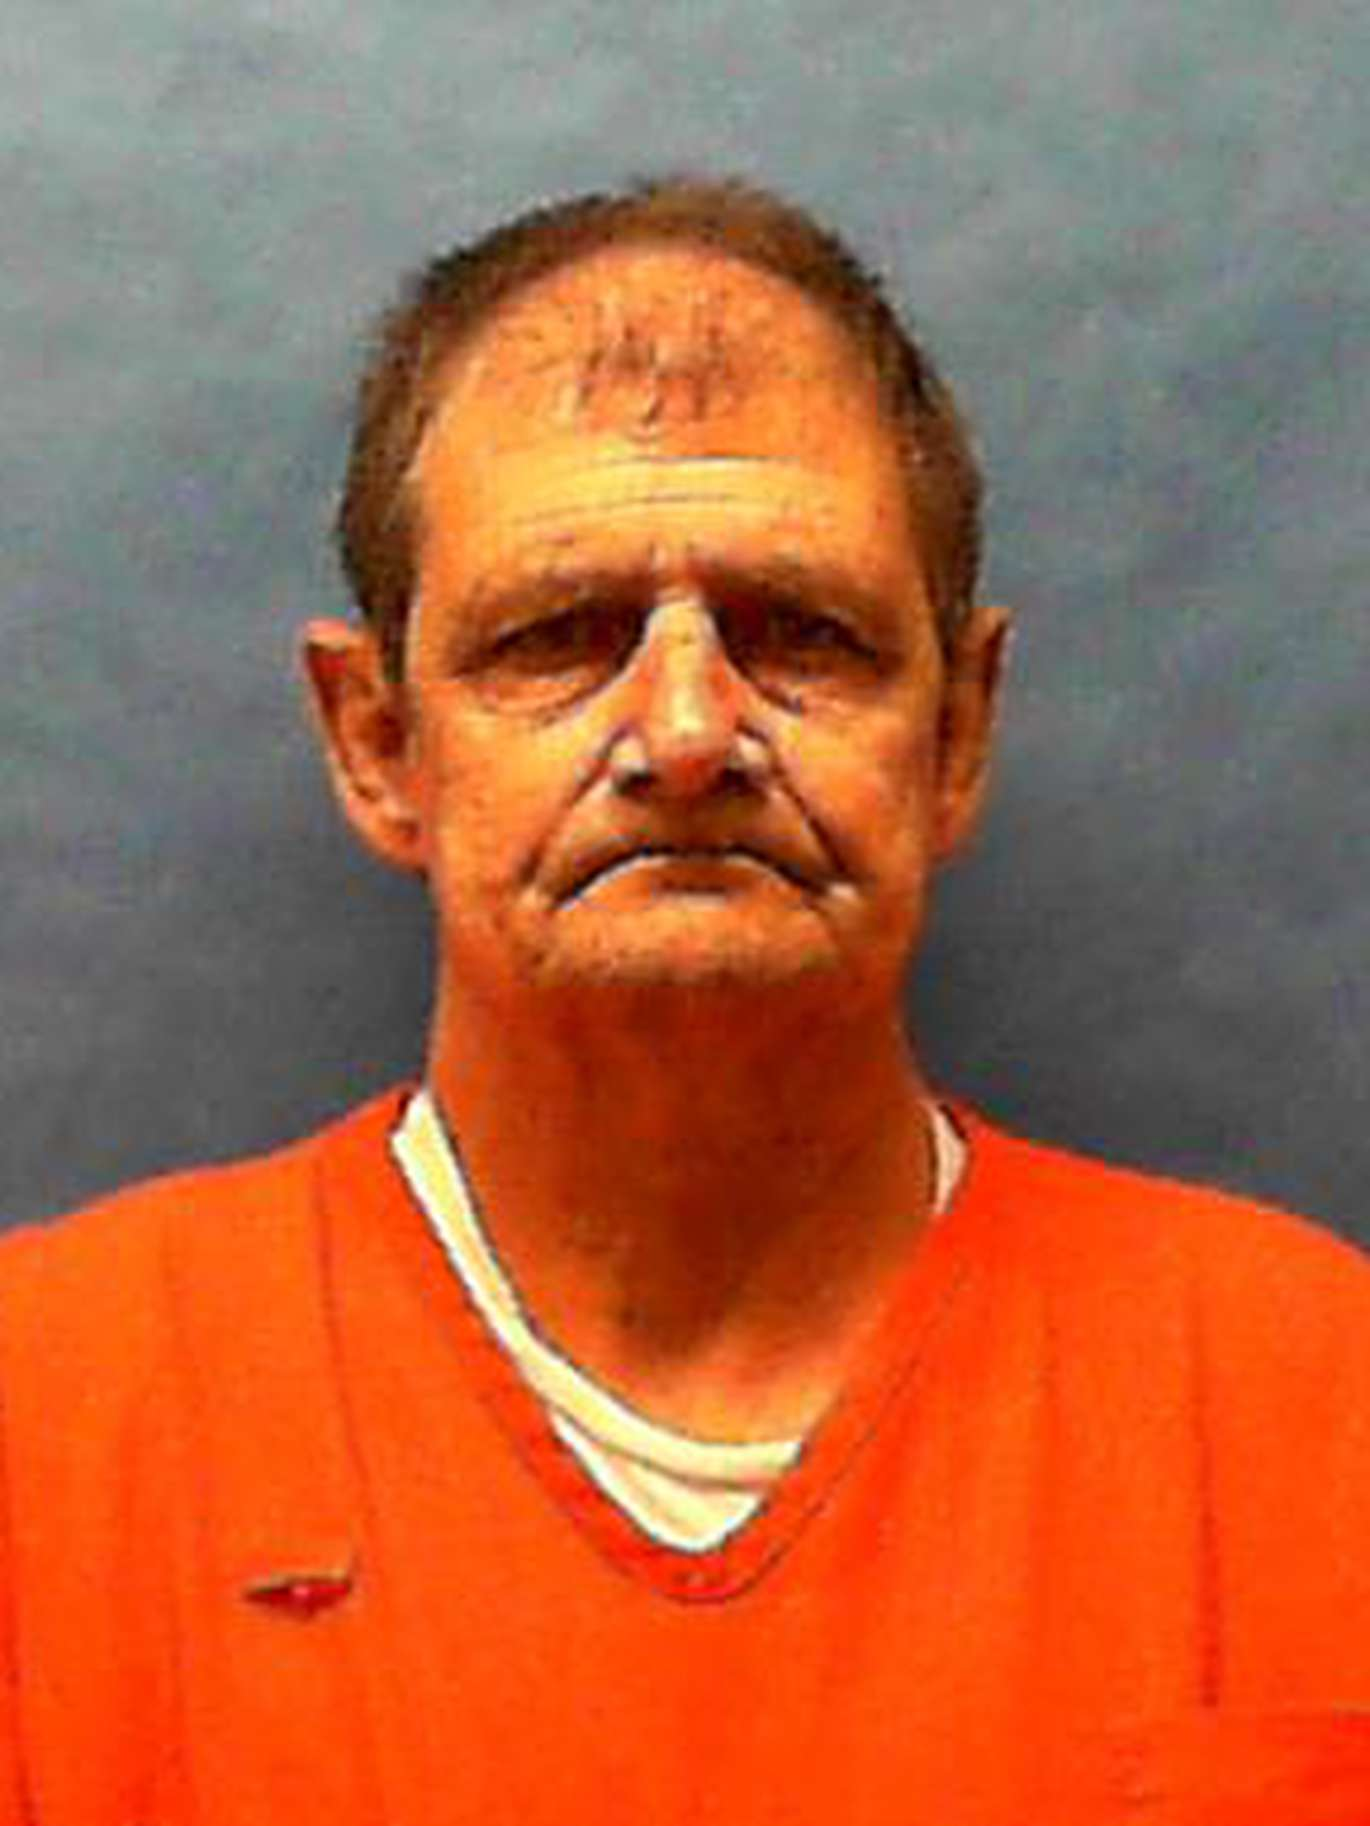 In 1999, Willie Crain was convicted of the first-degree murder of seven-year-old Amanda Brown in September 1998. He began his sentence on September 14, 2000.